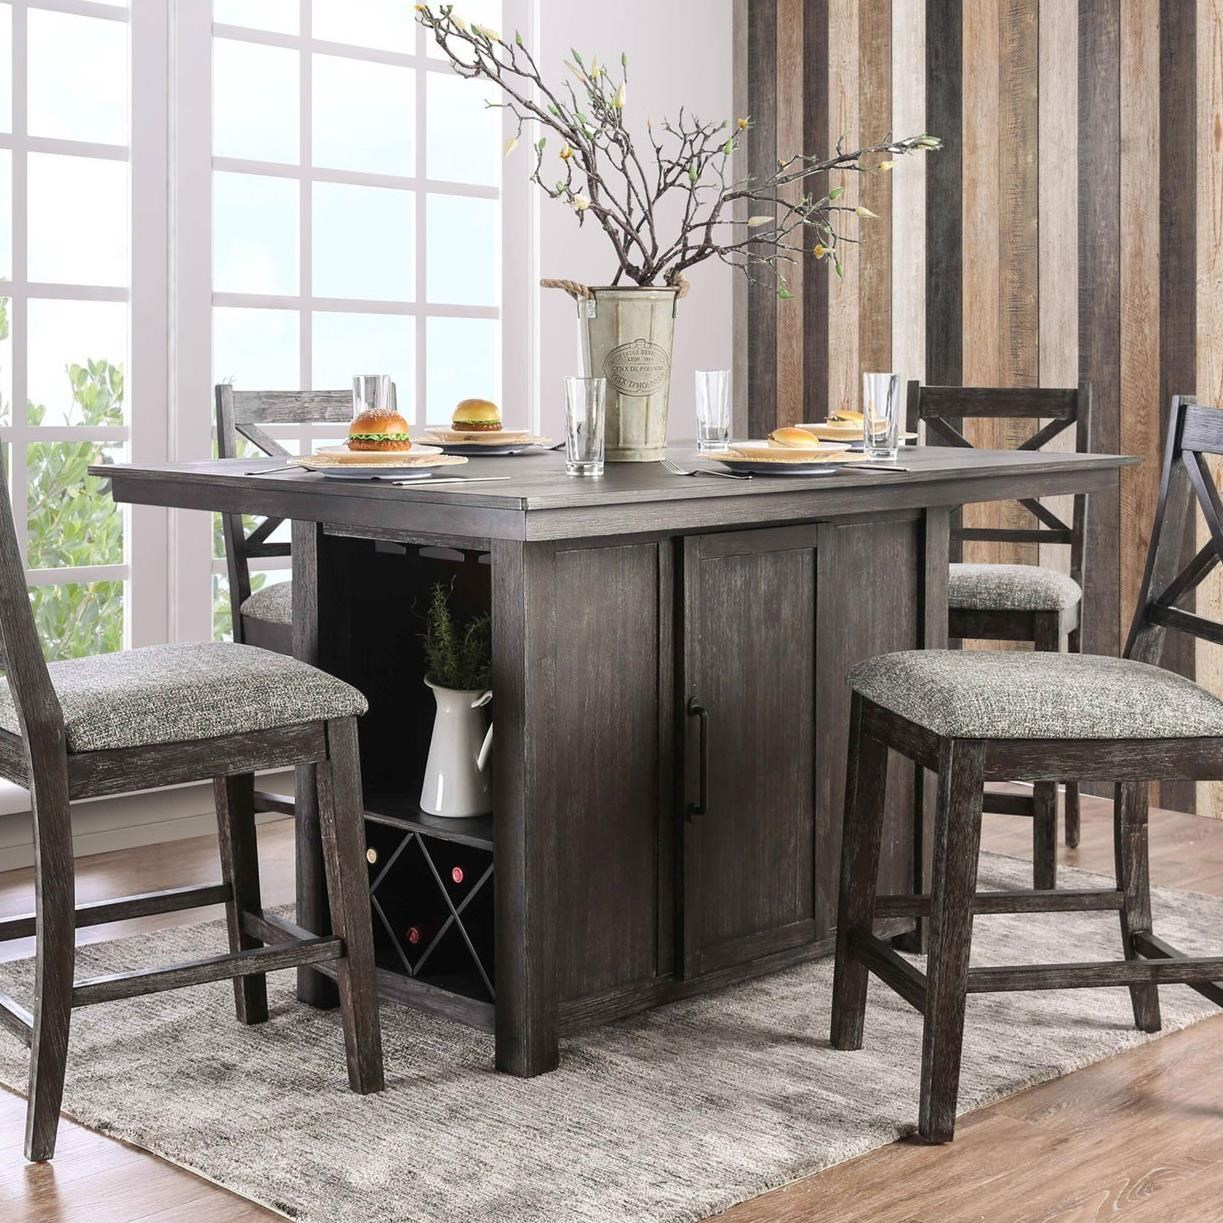 Furniture Of America Faulkton Counter Height Table With Wine Bottle